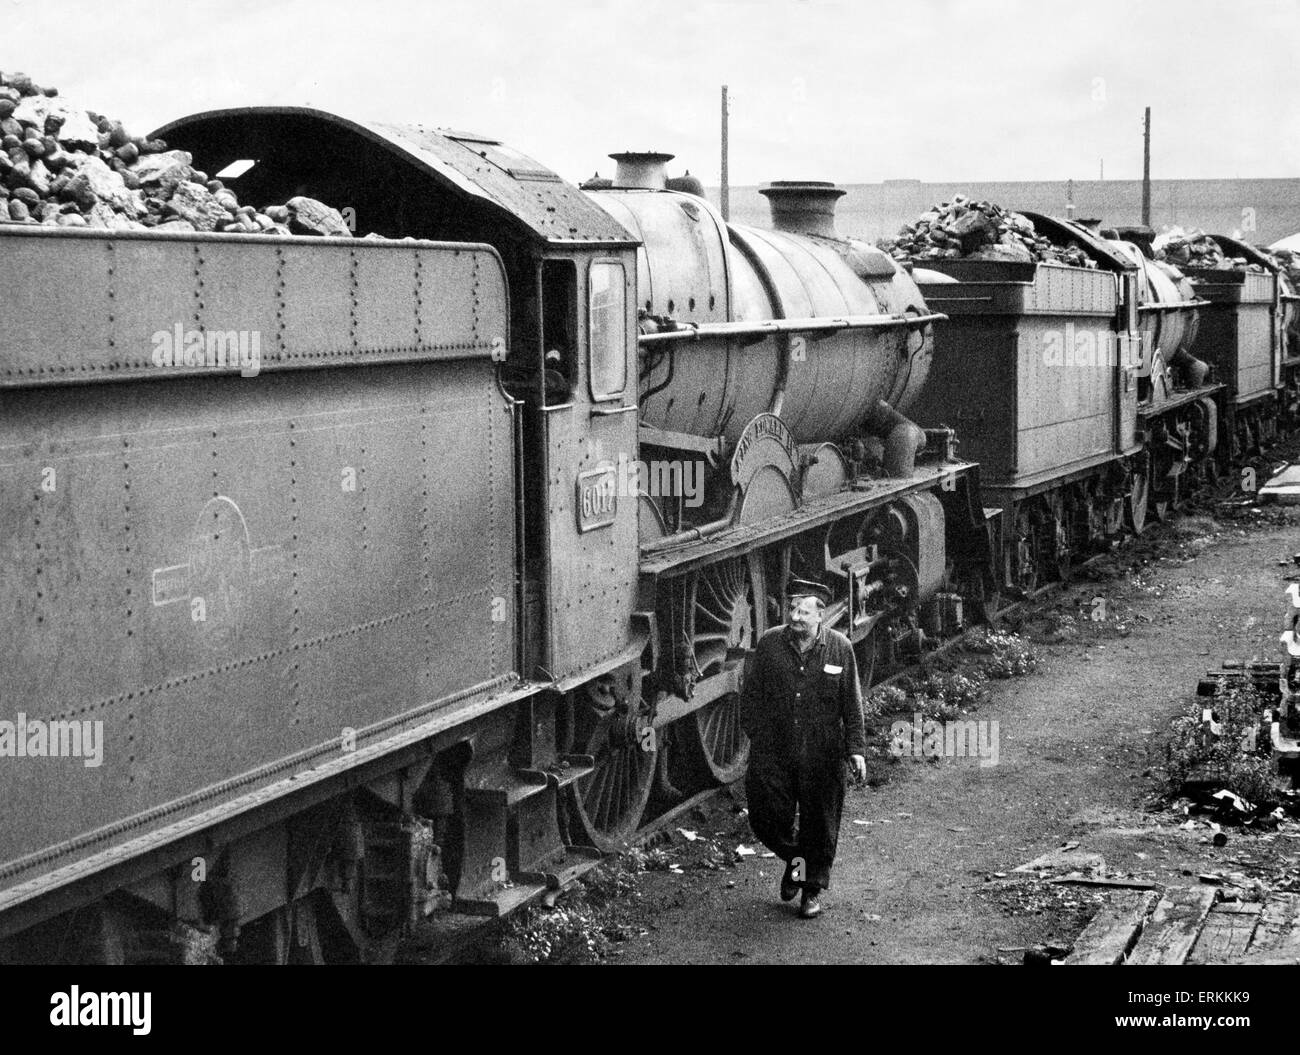 Out of service Kings class locomotives pictured at Stafford Road depot in Wolverhampton. September 1962. - Stock Image